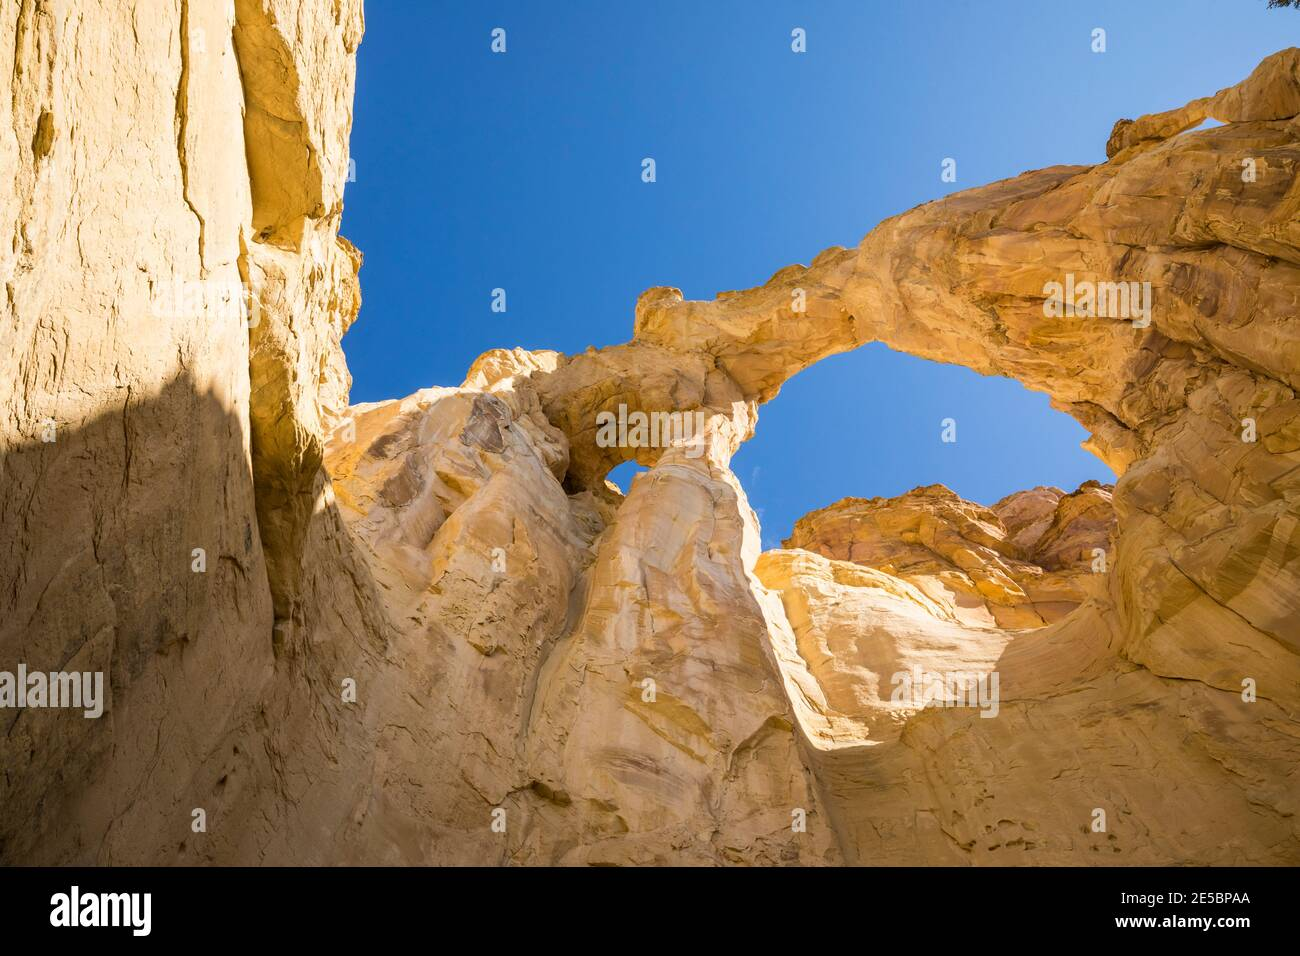 Grosvenor Arch, Grand Staircase-Escalante National Monument, Utah, USA. Banque D'Images